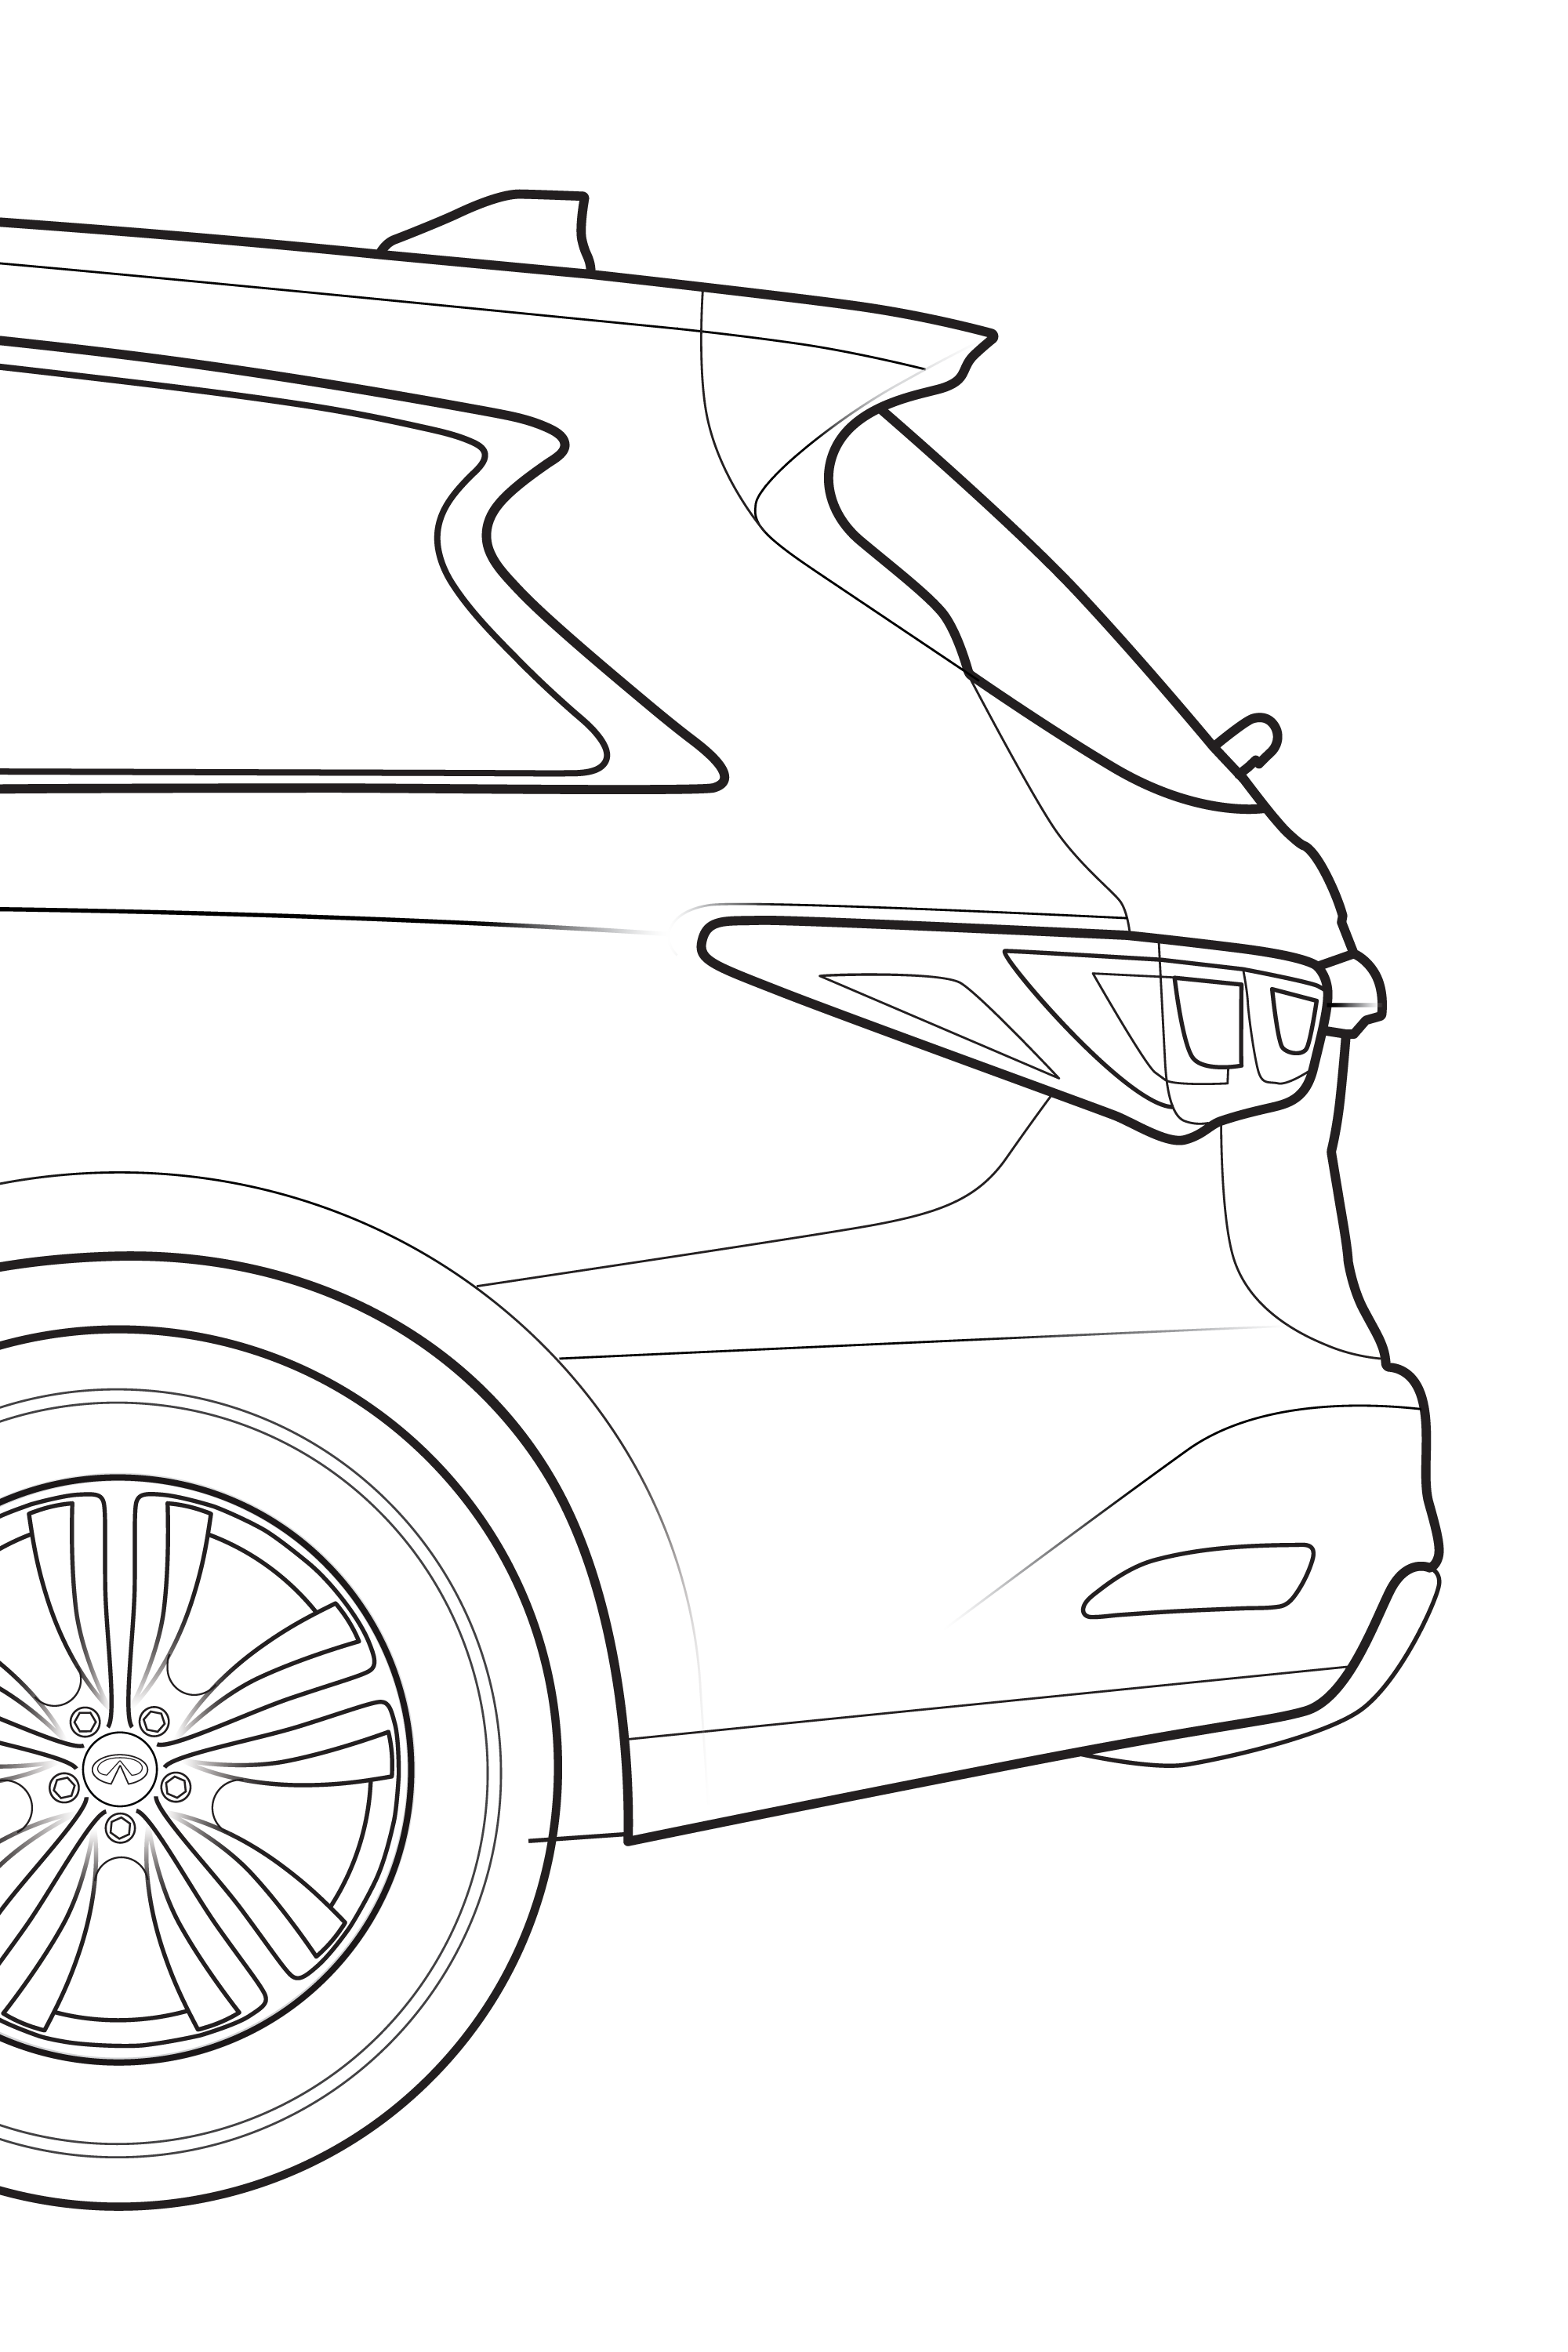 Infiniti blueprint nicholas sickelton in addition each line drawing was turned into a cad work to use to produce 3d renderings of each vehicle malvernweather Image collections